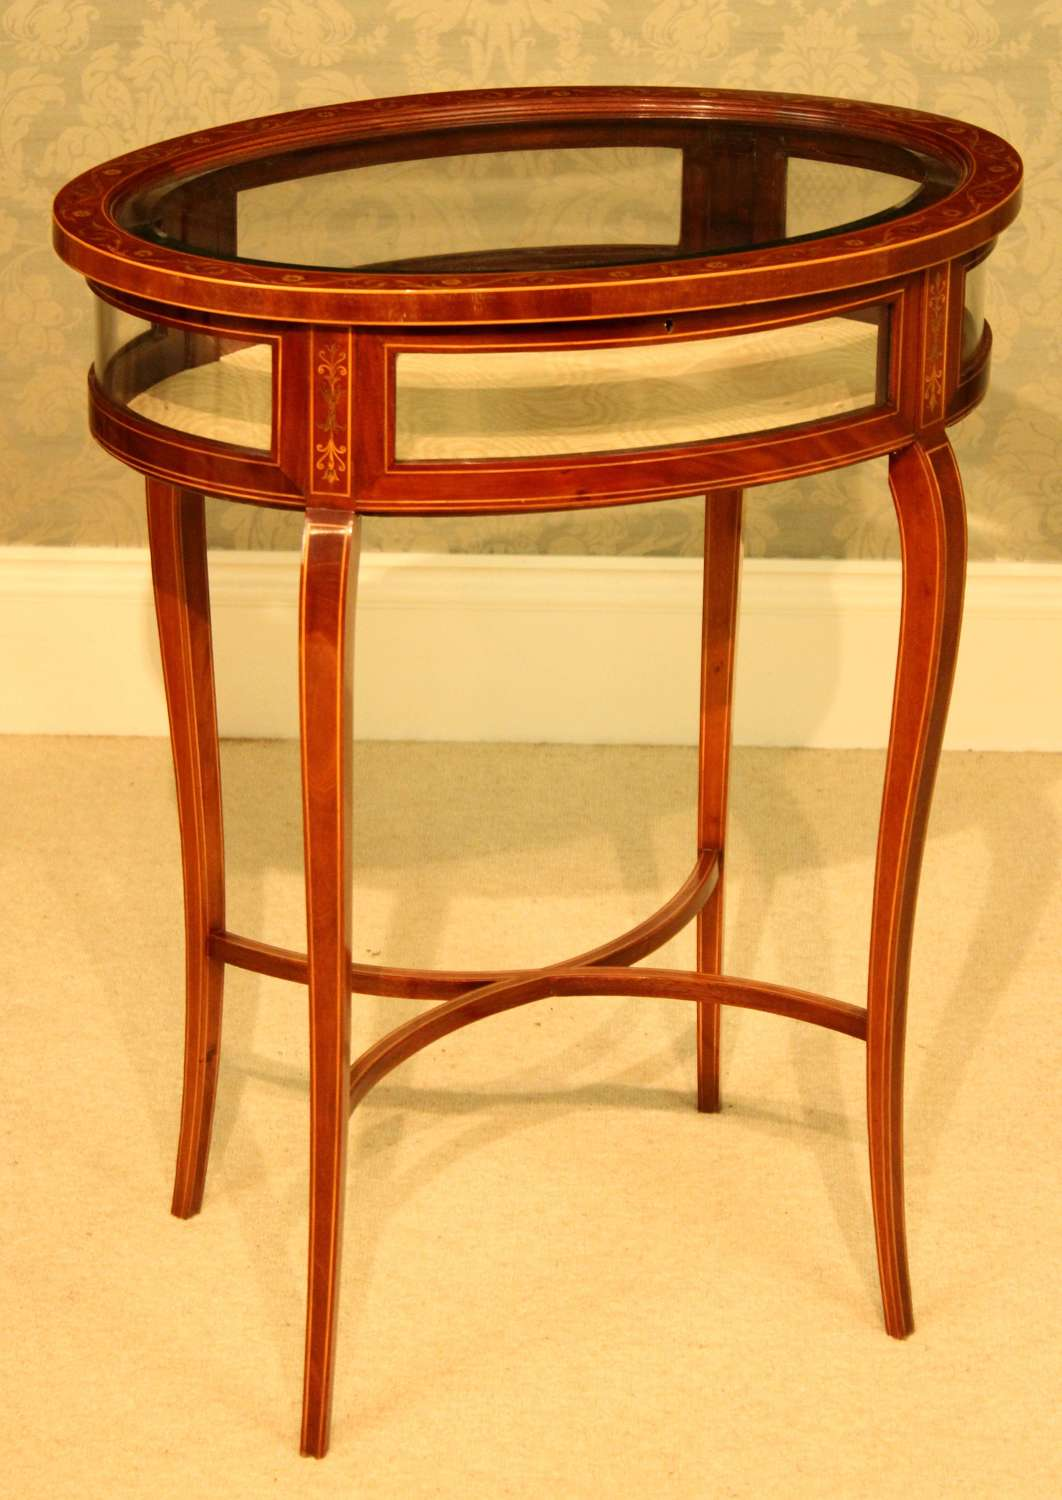 An Exceptional Edwardian Mahogany Inlaid Oval Bijouterie Table